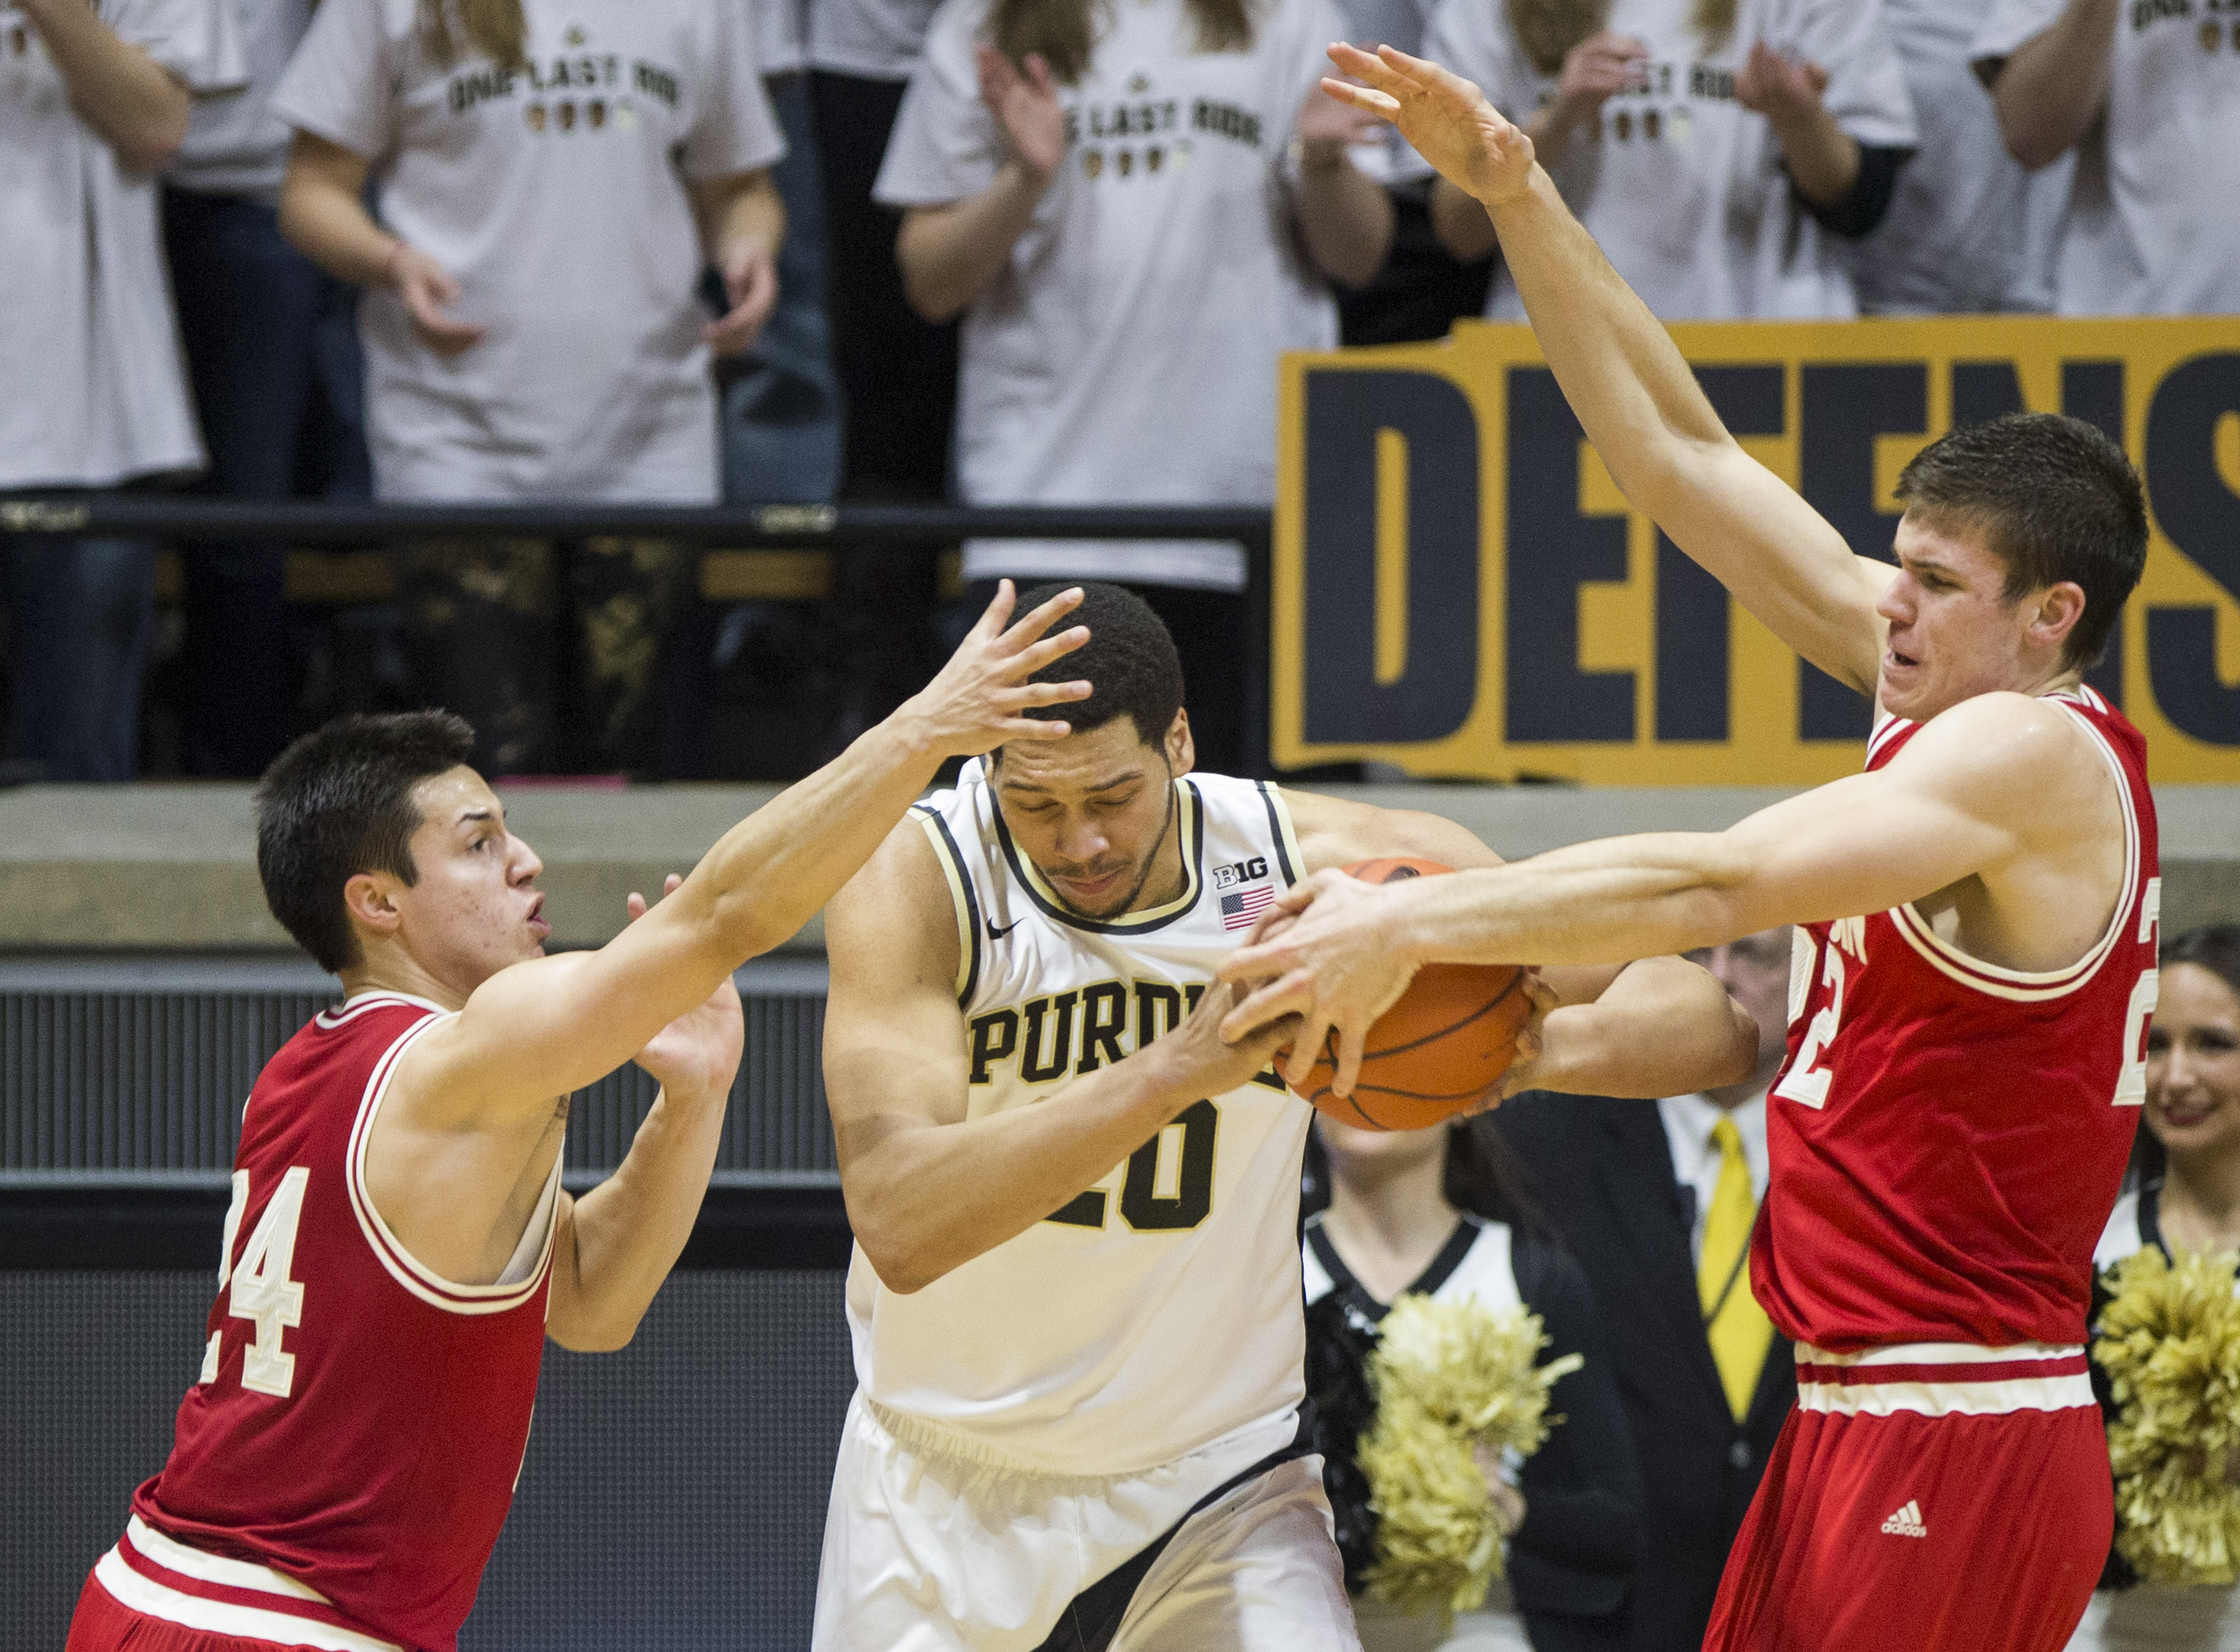 Purdue's A.J. Hammons (20) gets pressure from Wisconsin's BronsonKoenig (24) and EthanHapp (22), right, during the first half of an NCAA college basketball game Sunday, March 6, 2016, in West Lafayette, Ind. (AP Photo/Robert Franklin)